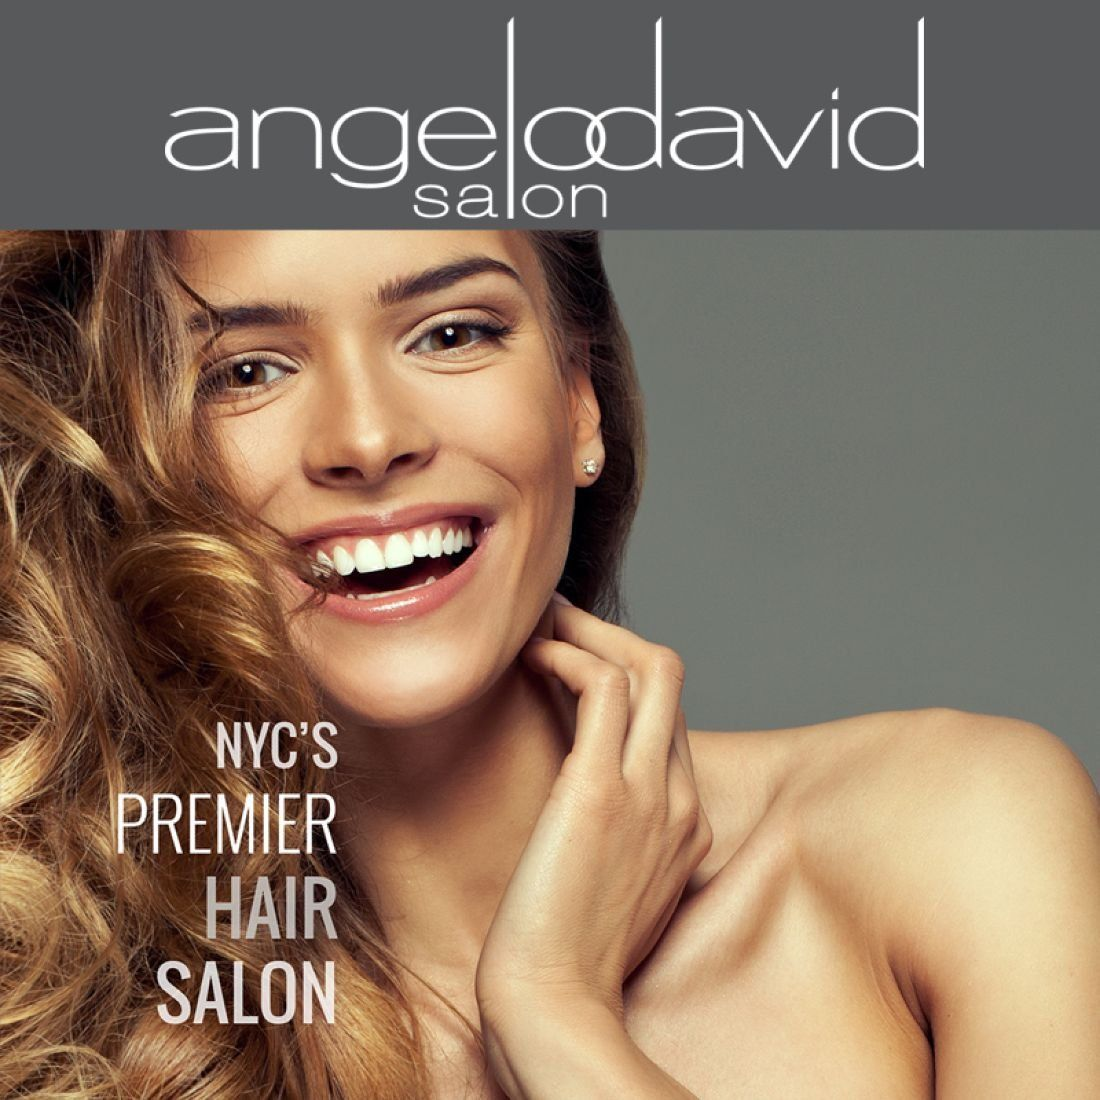 Angelo David Salon Leading Luxury Hair Salon